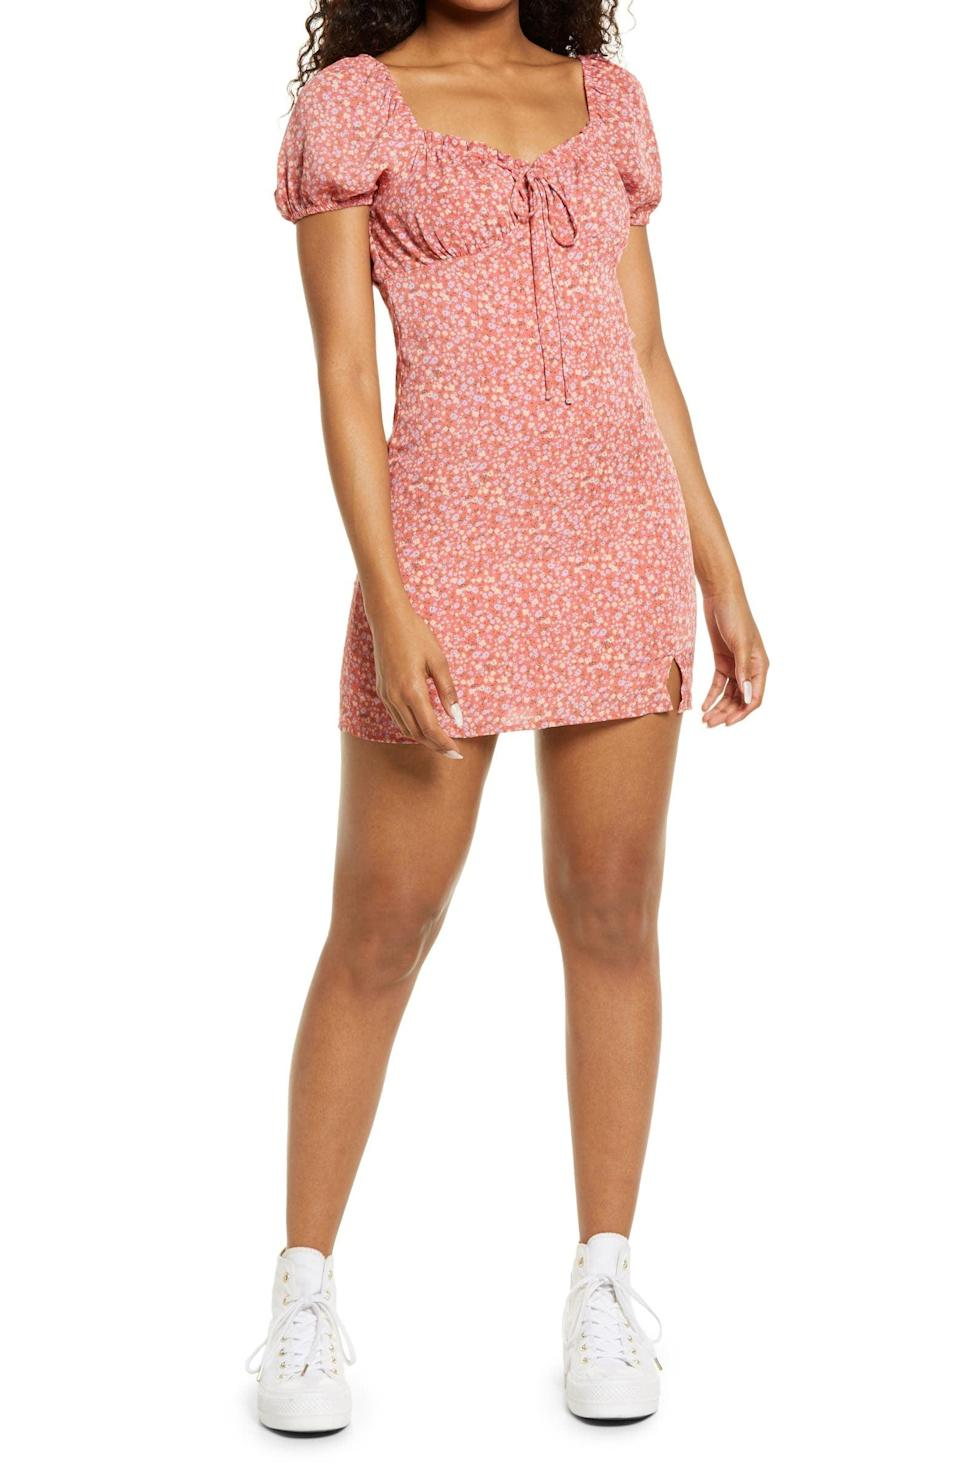 <p>This <span>BP. Ditsy Floral Tie Front Minidress</span> ($39) is perfect for spring picnics or warm beach days.</p>